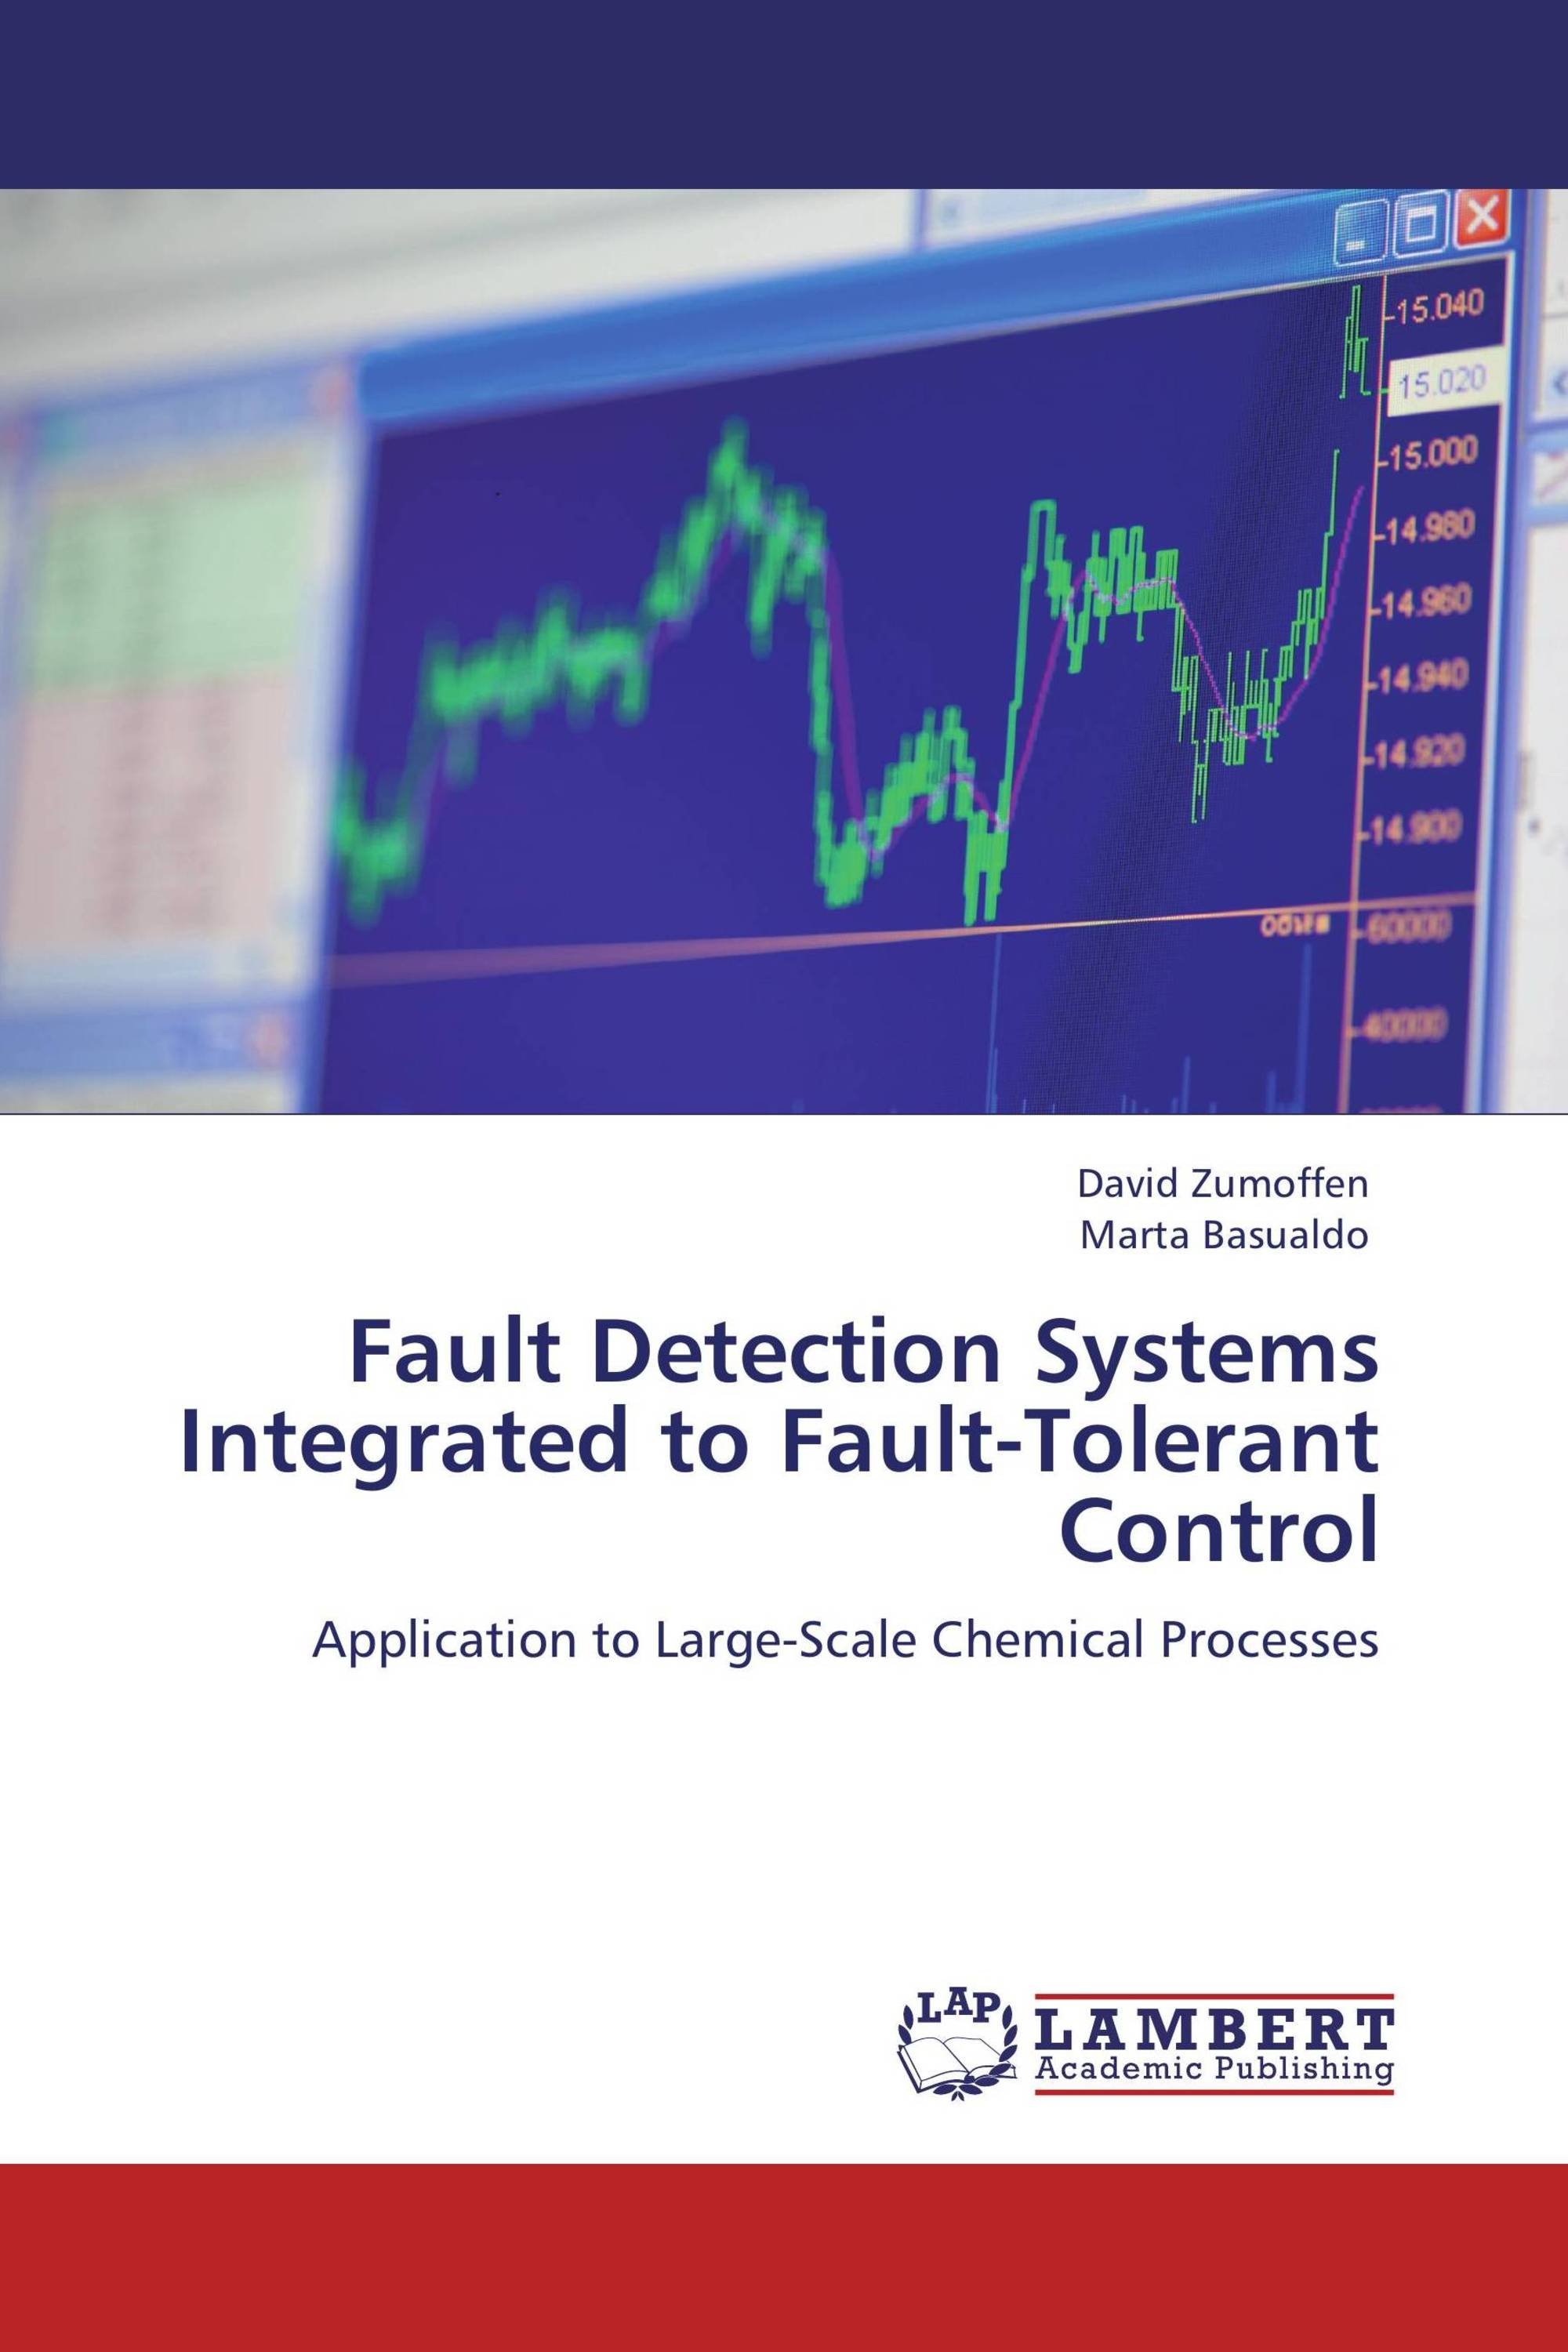 Fault Detection Systems Integrated to Fault-Tolerant Control